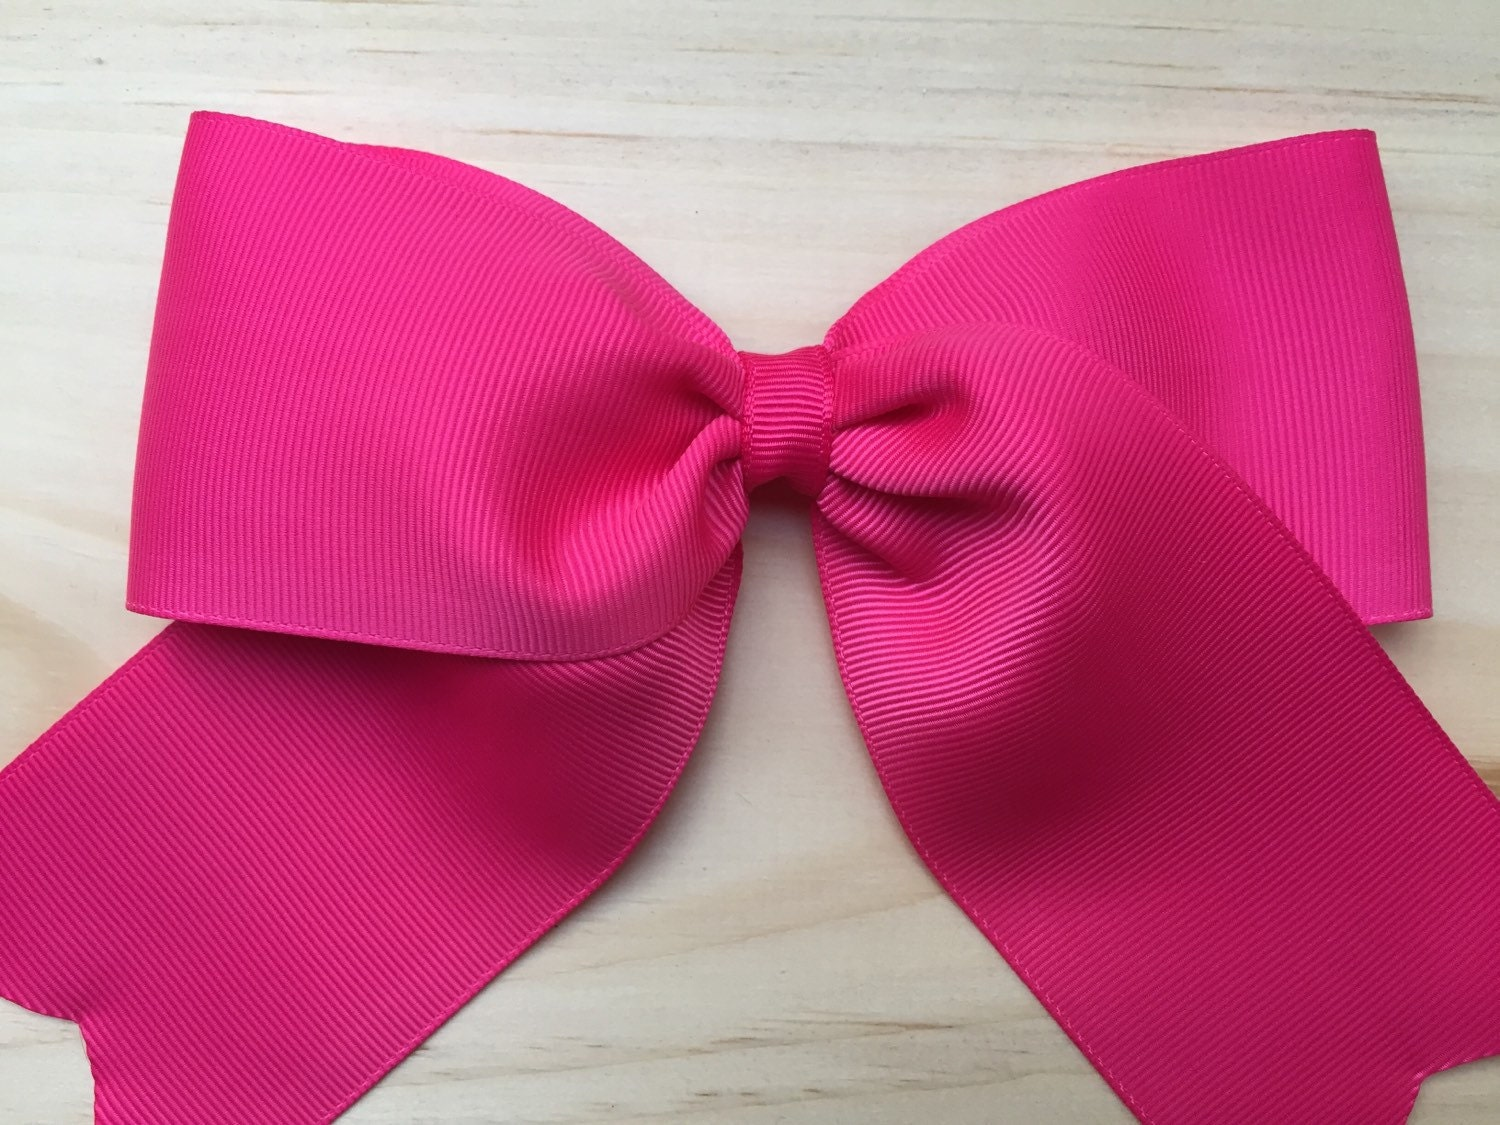 0999b330d5f7 Extra large 6 inch hair bow - hot pink bow